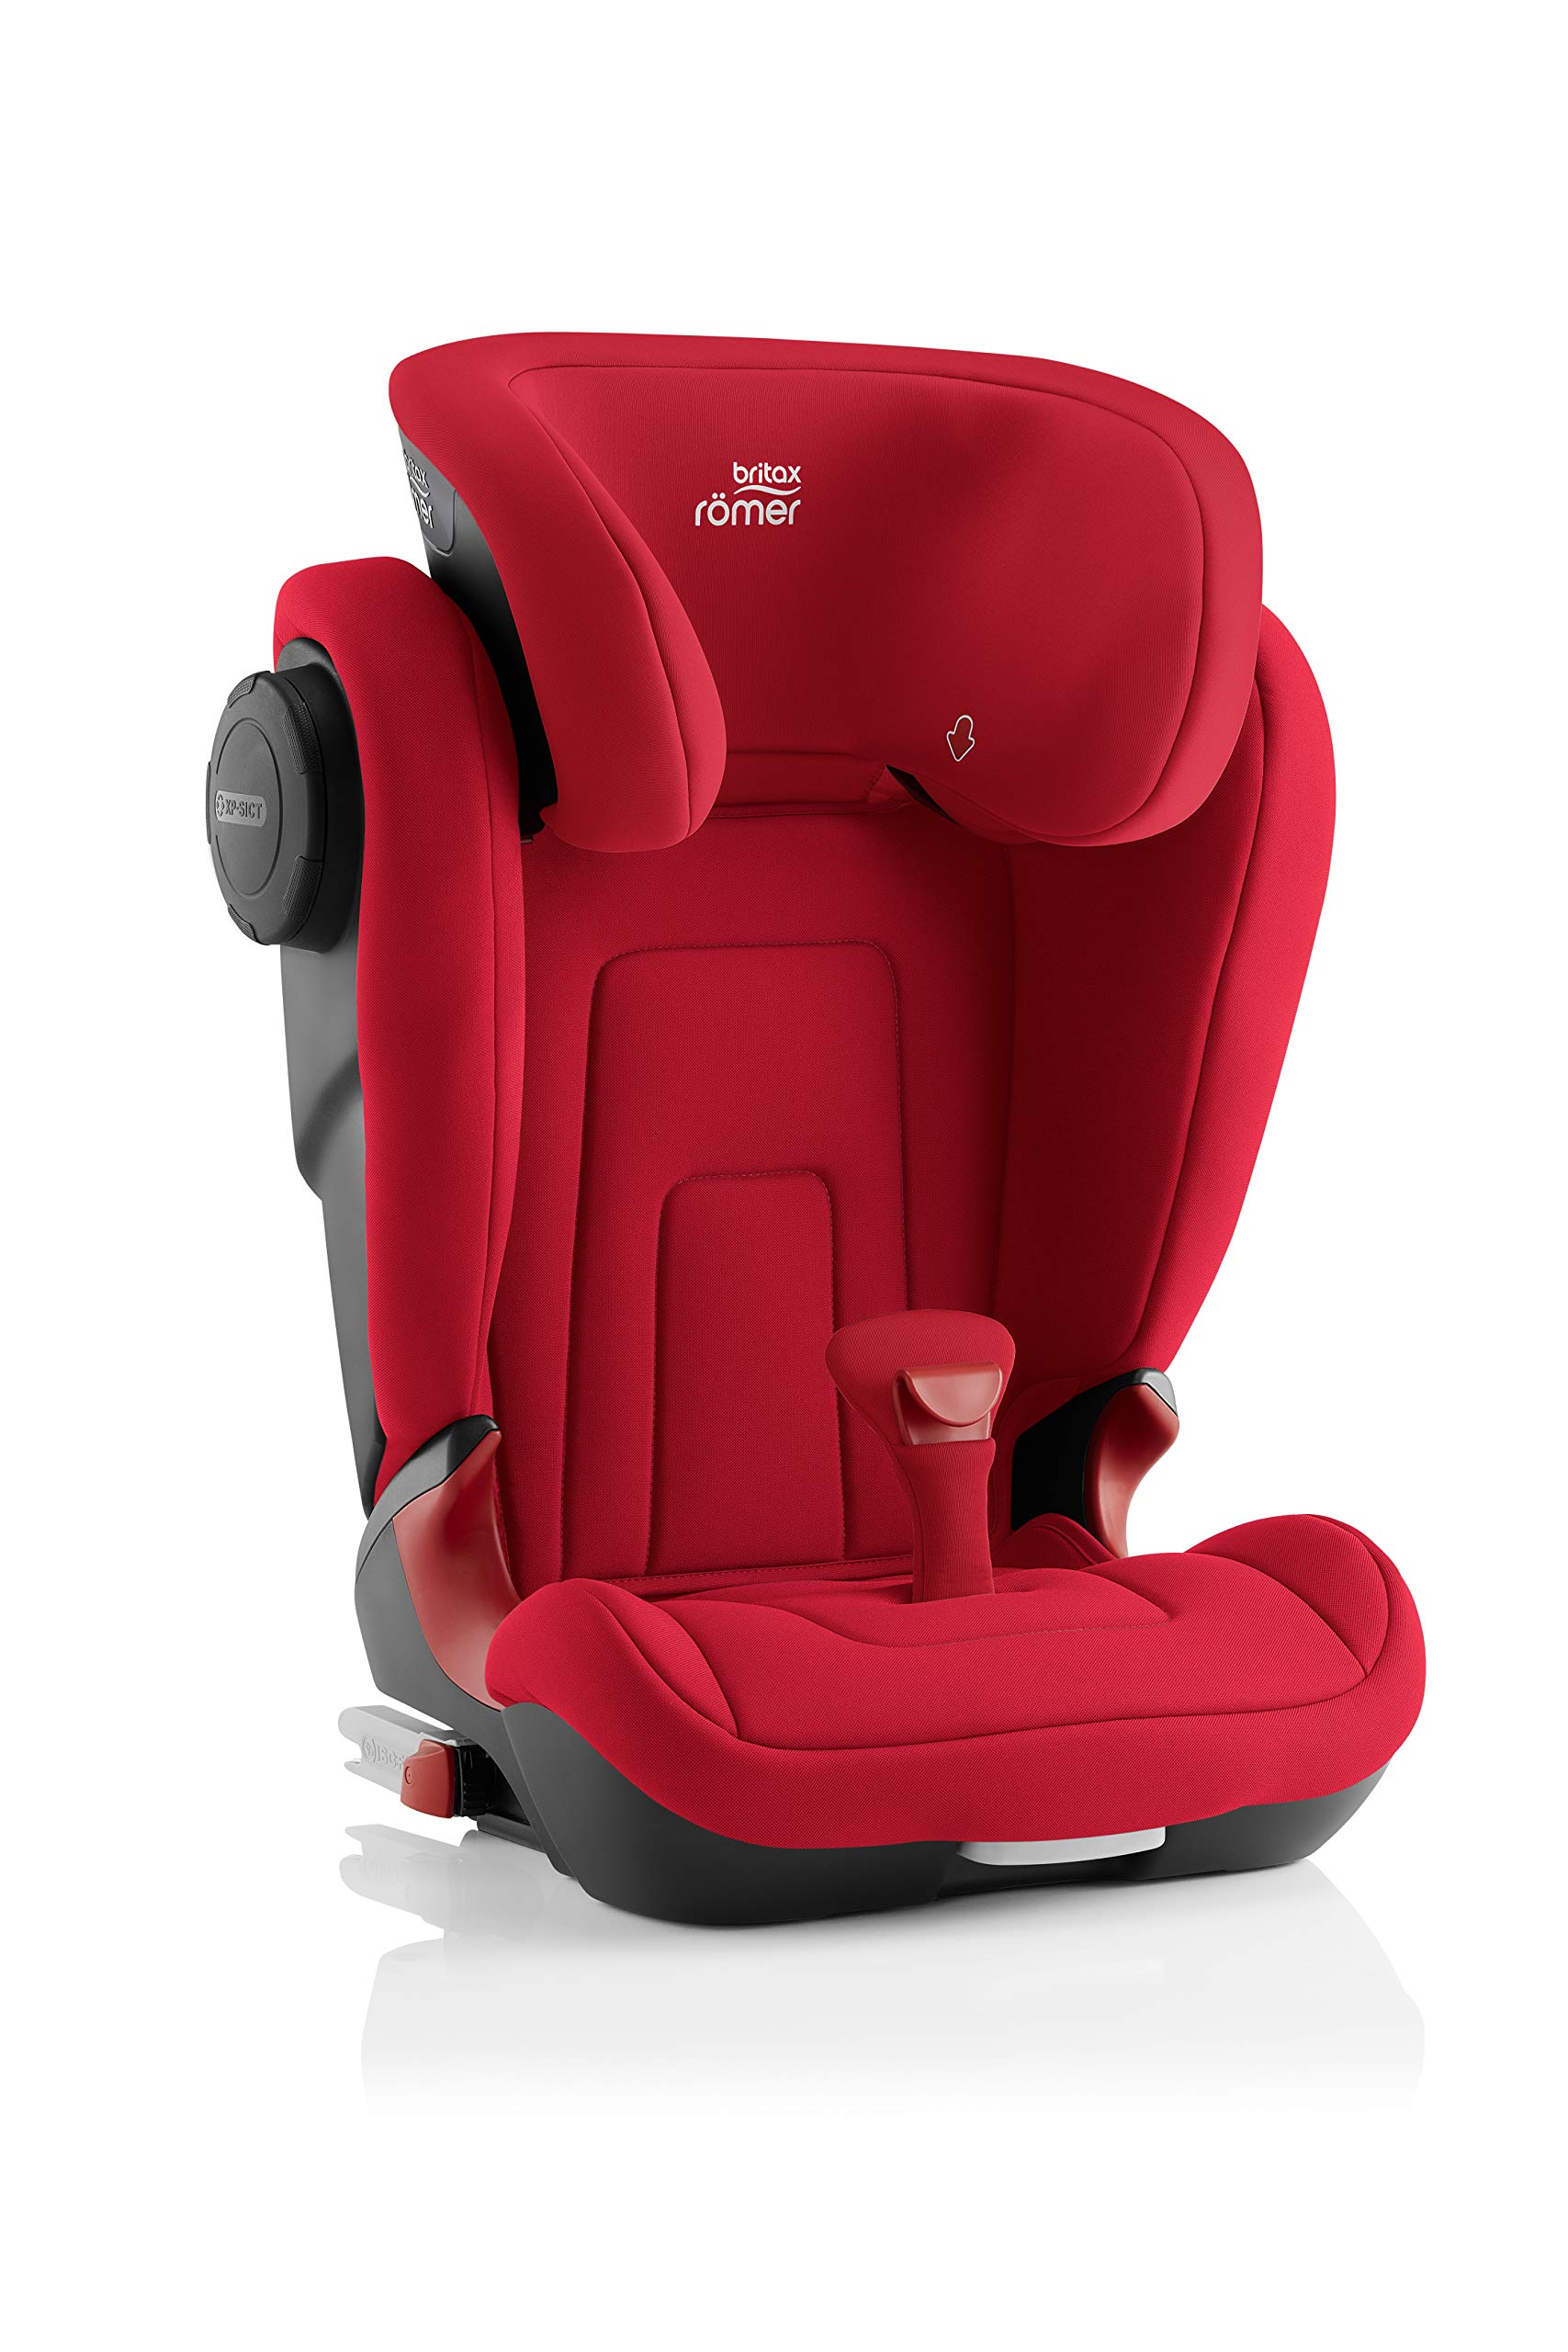 Britax Römer KIDFIX² S Group 2-3 (15-36kg) Car Seat - Fire Red Britax Römer Advanced side impact protection - sict offers superior protection to your child in the event of a side collision. reducing impact forces by minimising the distance between the car and the car seat. Secure guard - helps to protect your child's delicate abdominal area by adding an extra - a 4th - contact point to the 3-point seat belt. High back booster - protects your child in 3 ways: provides head to hip protection; belt guides provide correct positioning of the seat belt and the padded headrest provides safety and comfort. 3